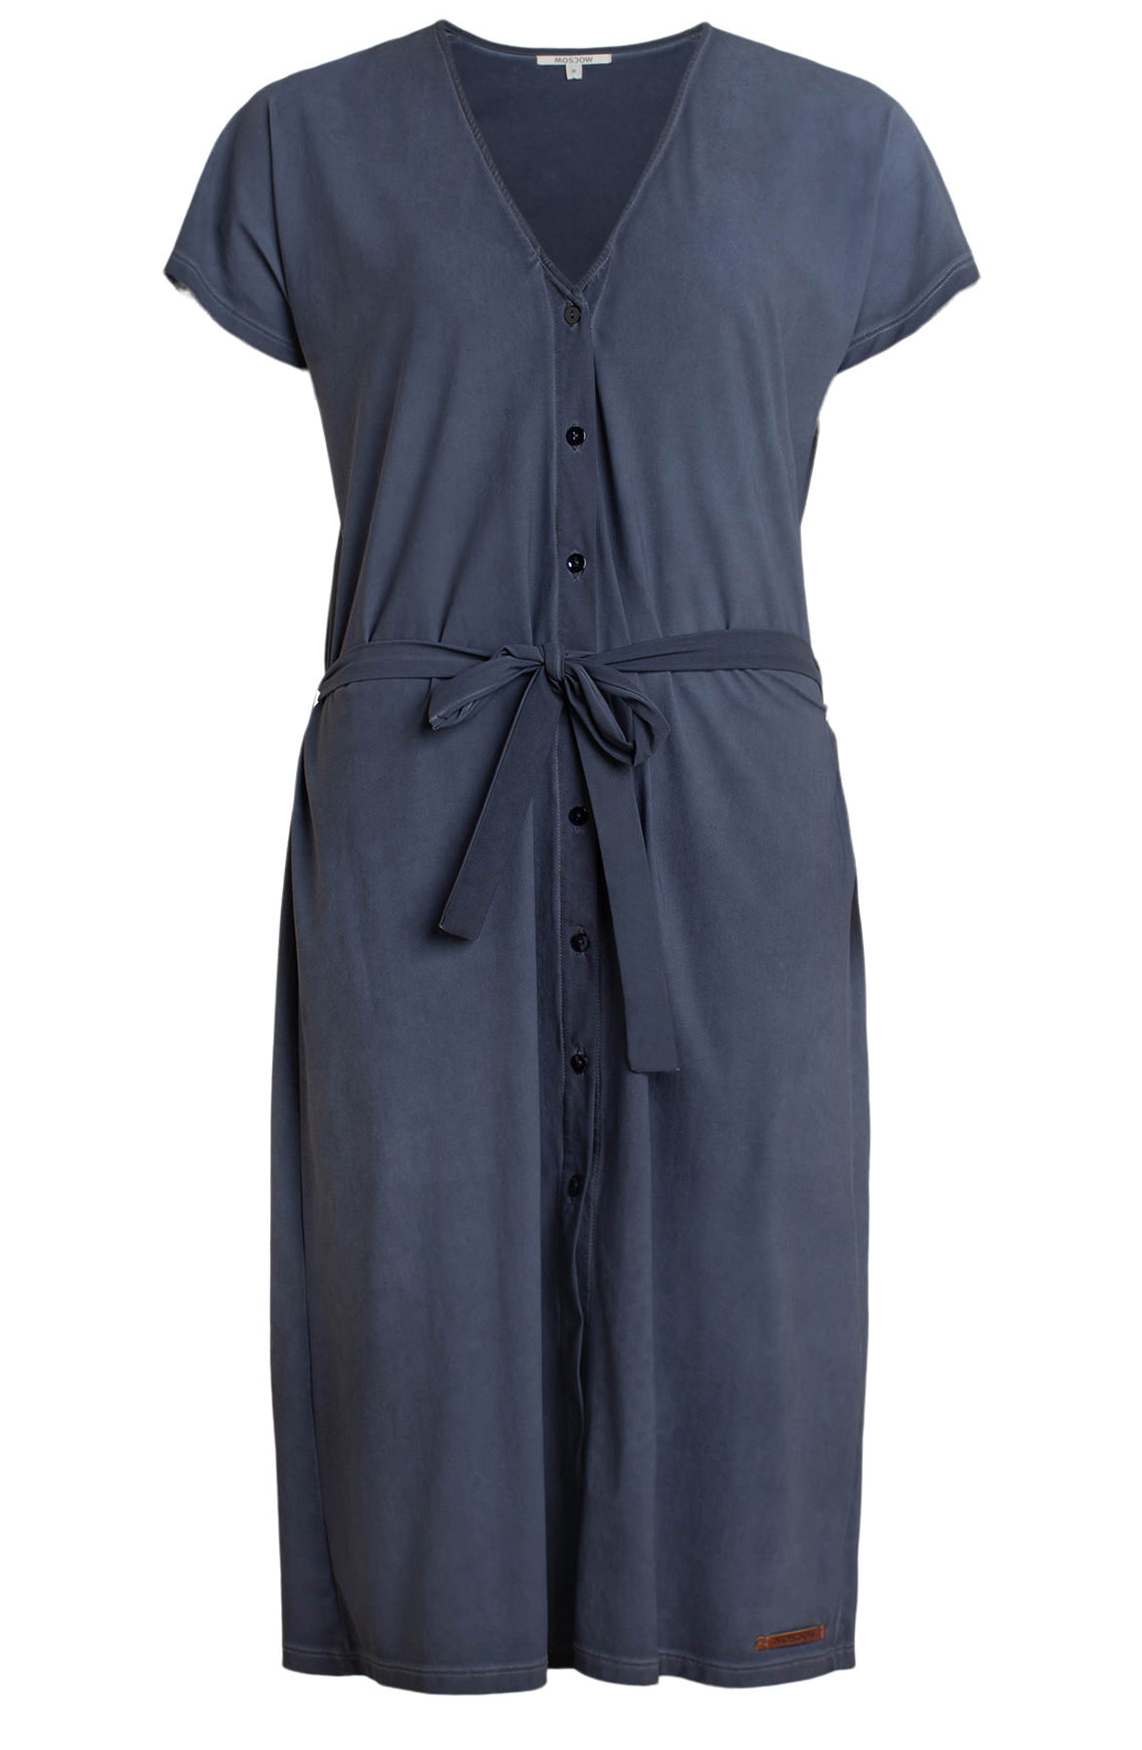 Moscow Dames Garmet Dye dress Blauw